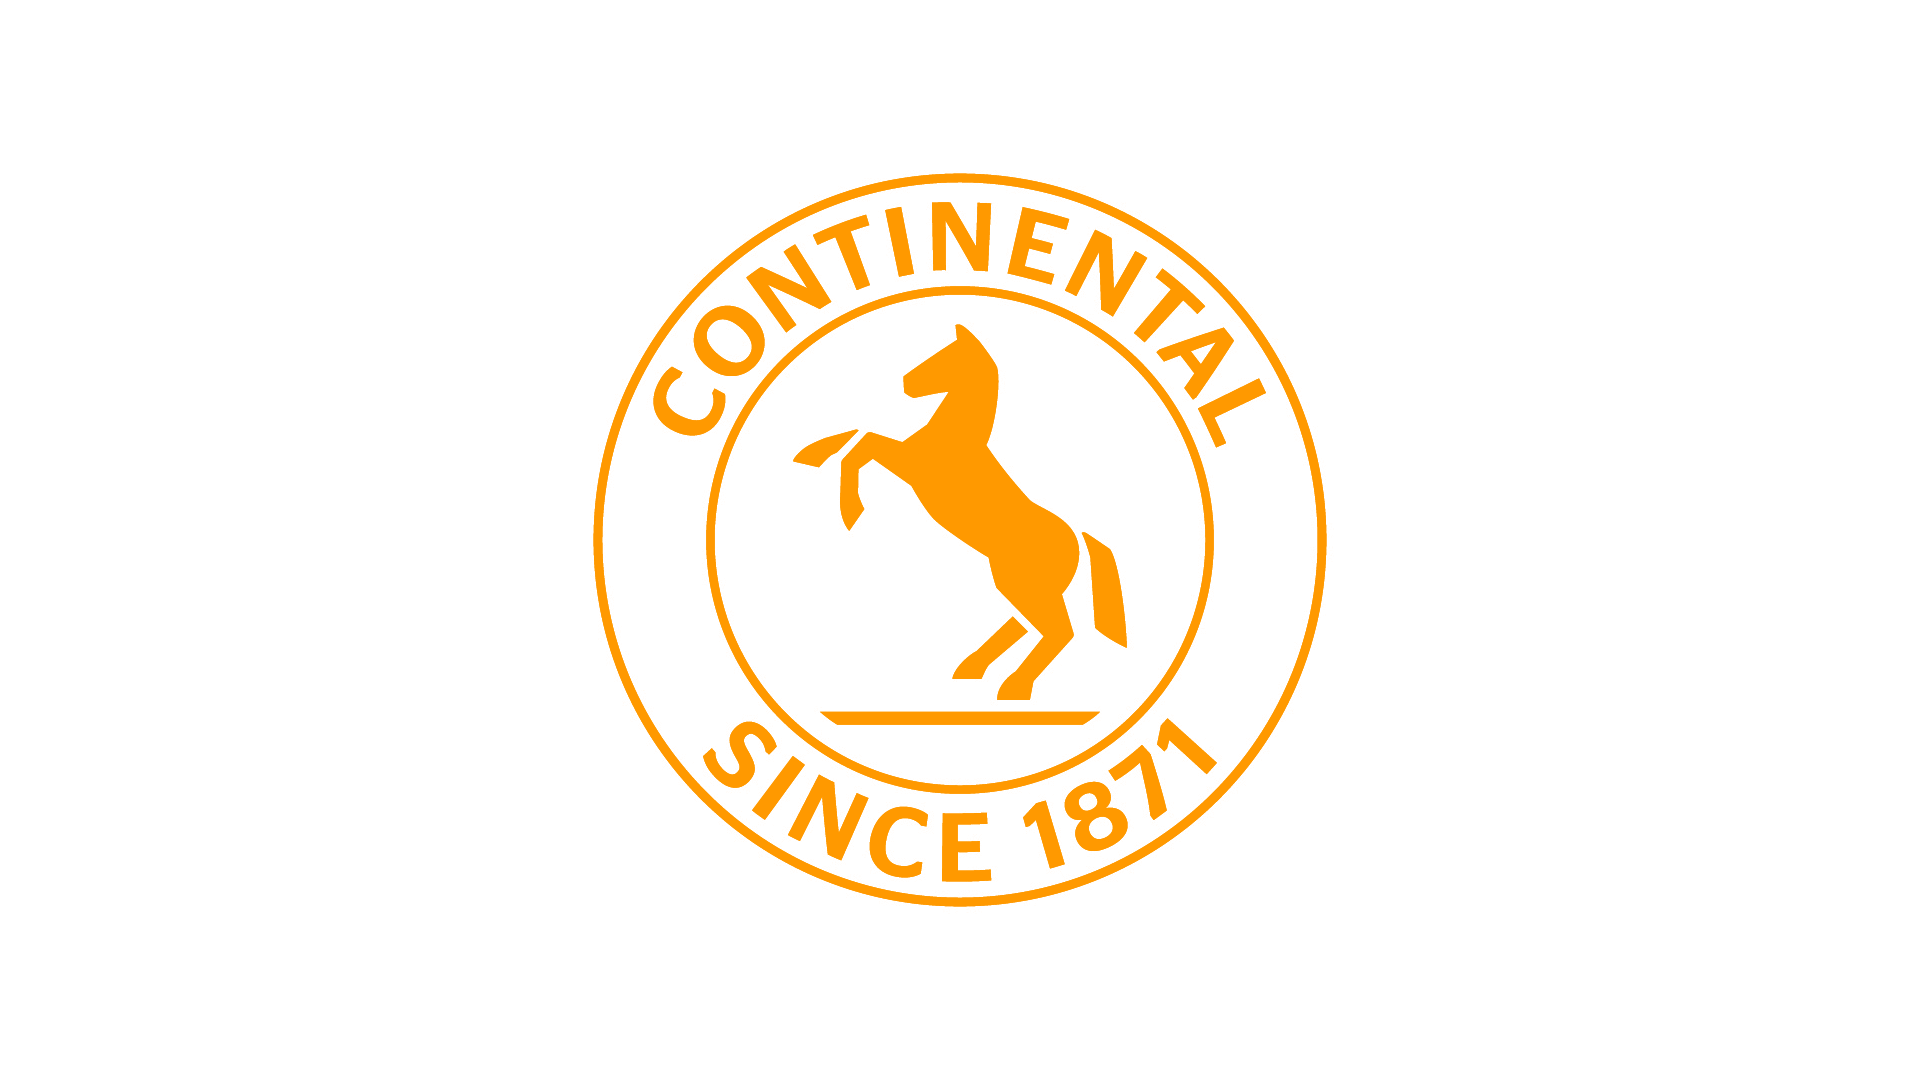 1920x1080 HD png - Continental PNG